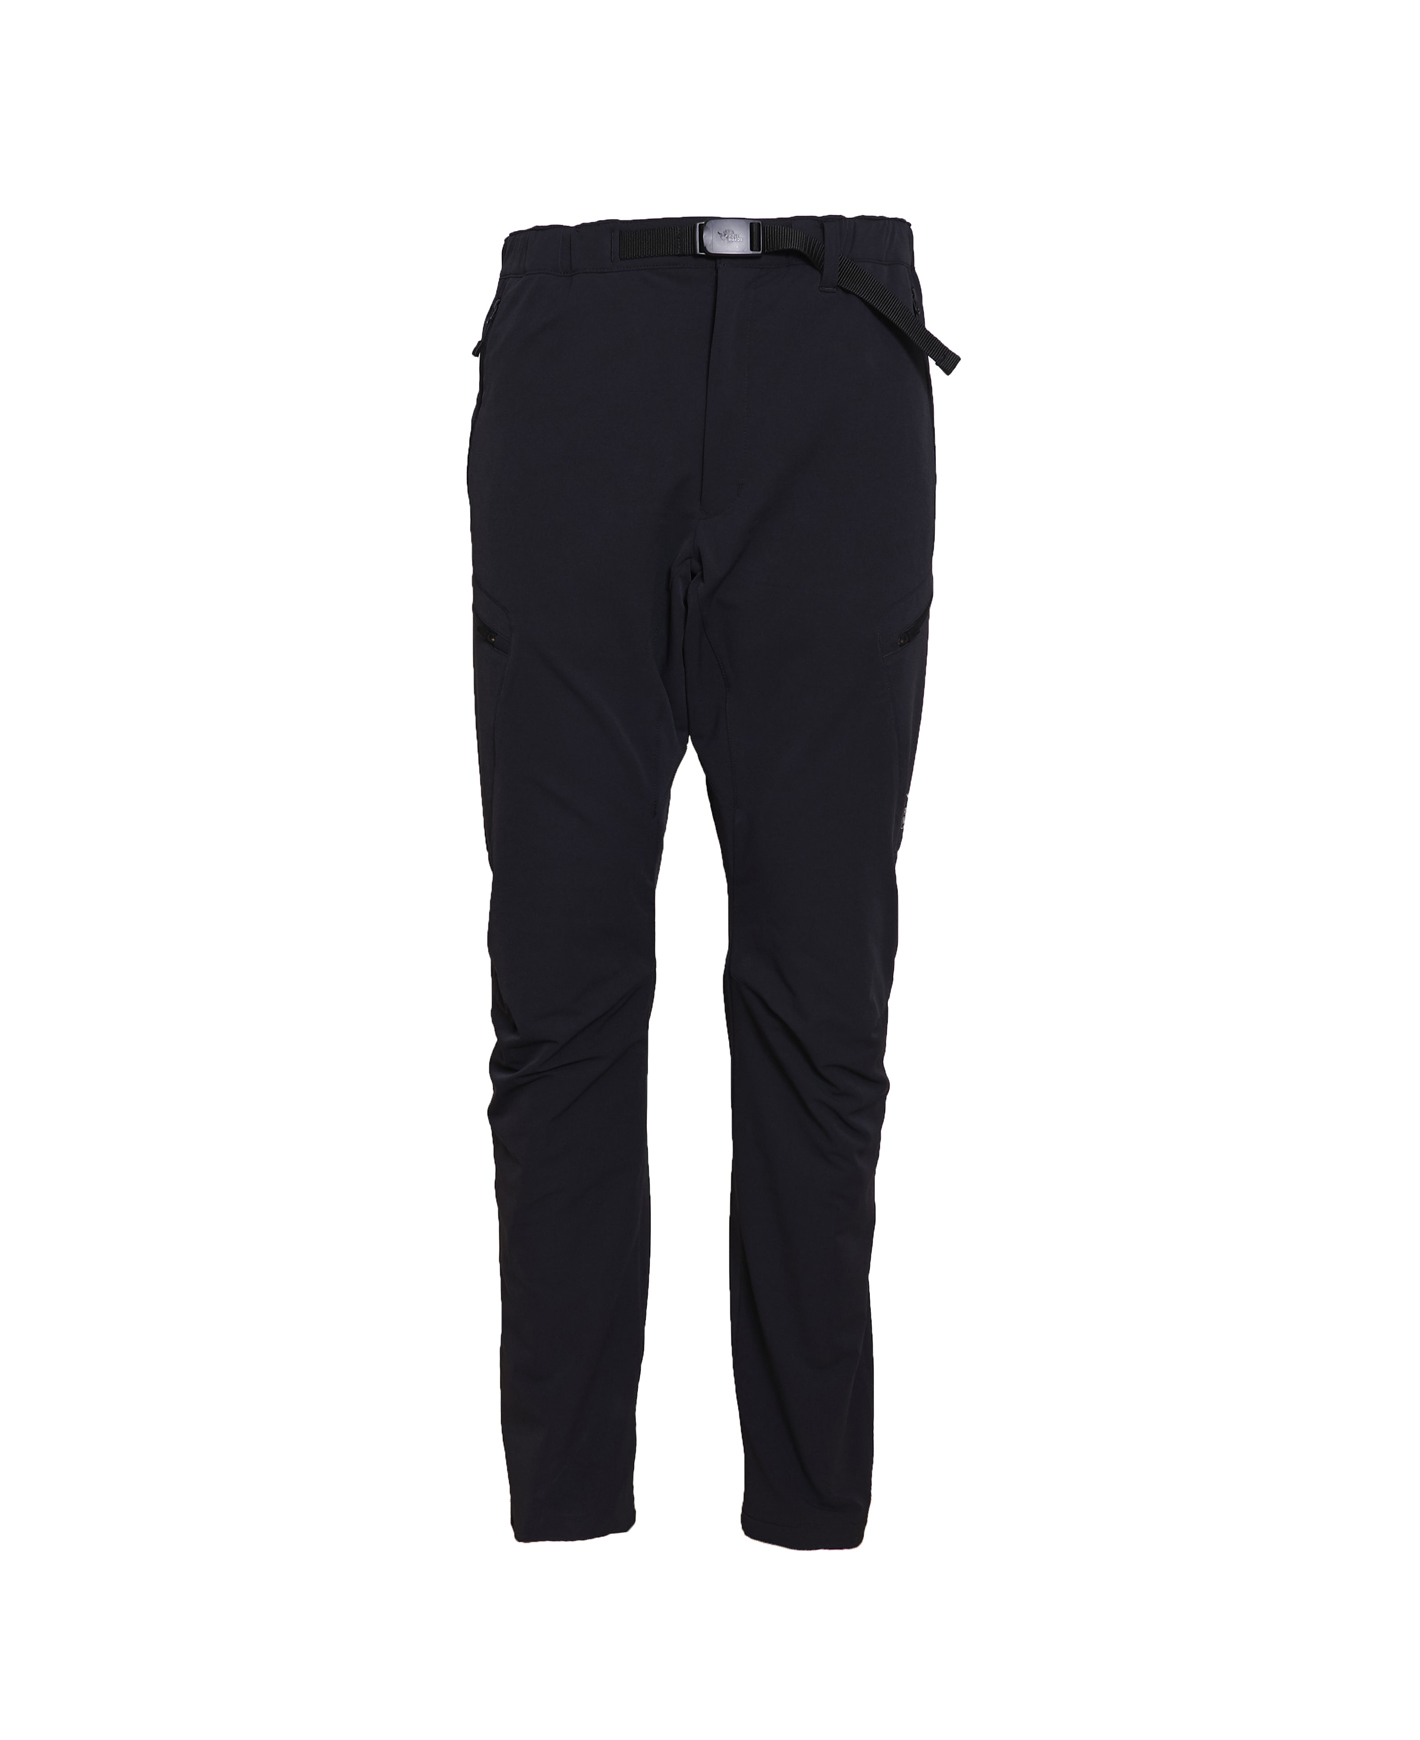 Trek Thermo Lining Pants